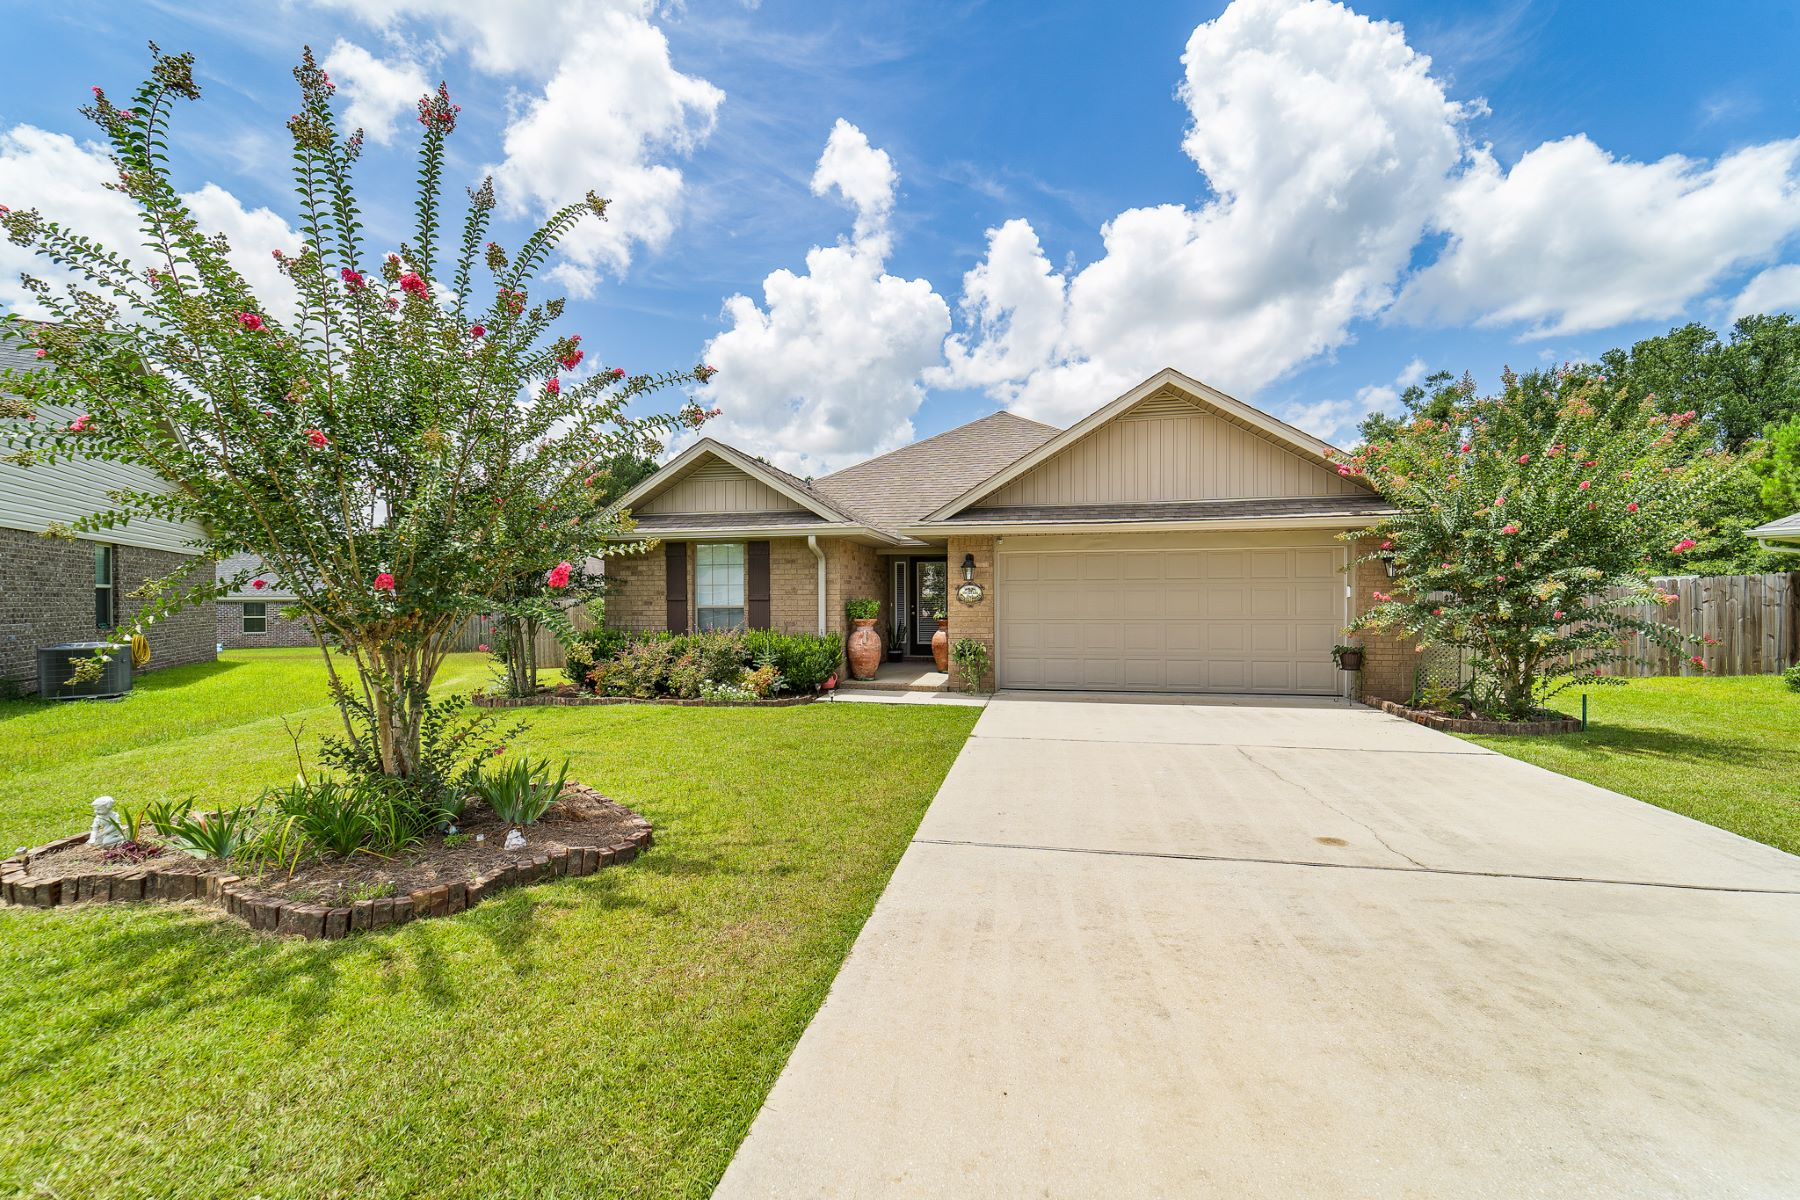 Single Family Homes for Active at Lakeland 16520 Scepter Court Loxley, Alabama 36551 United States